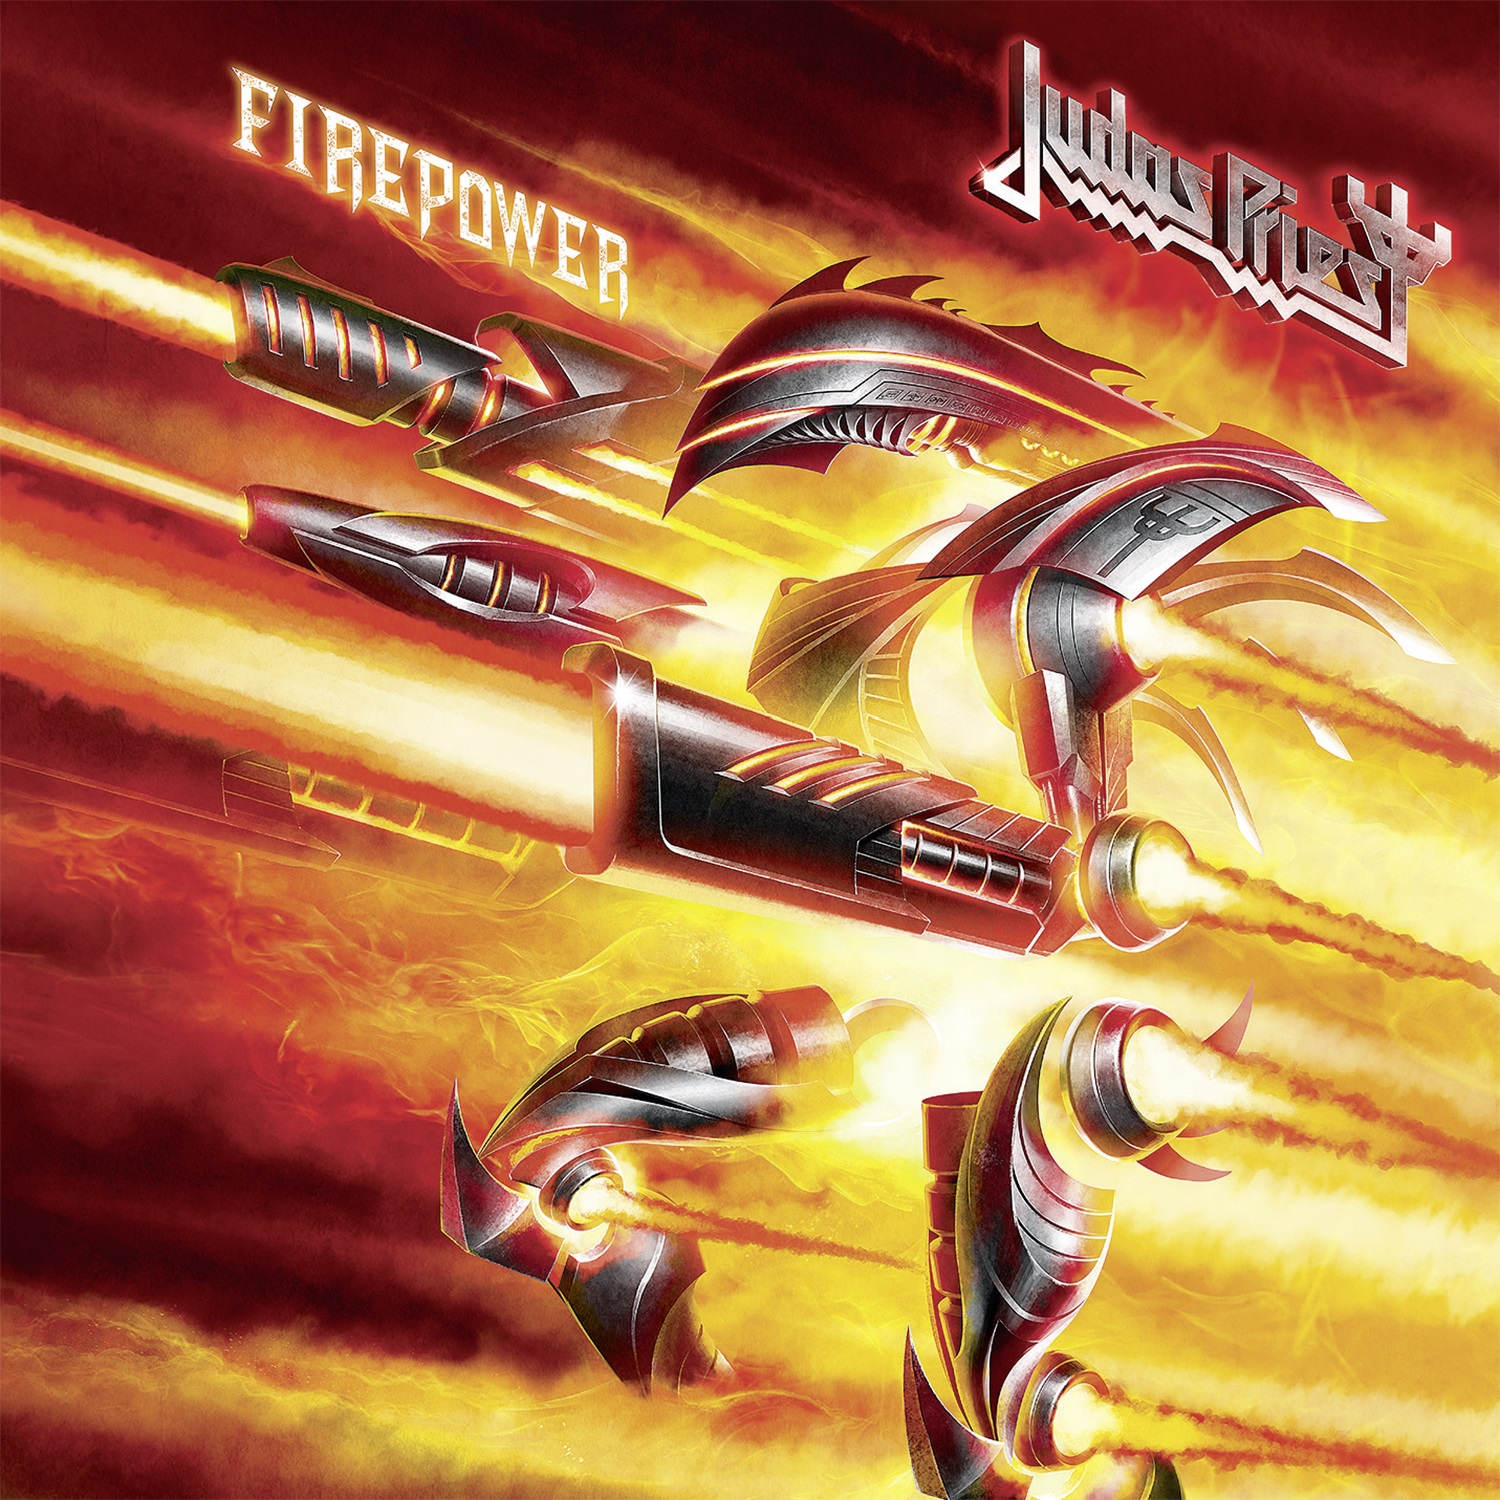 Judas Priest: Firepower (2018) Book Cover